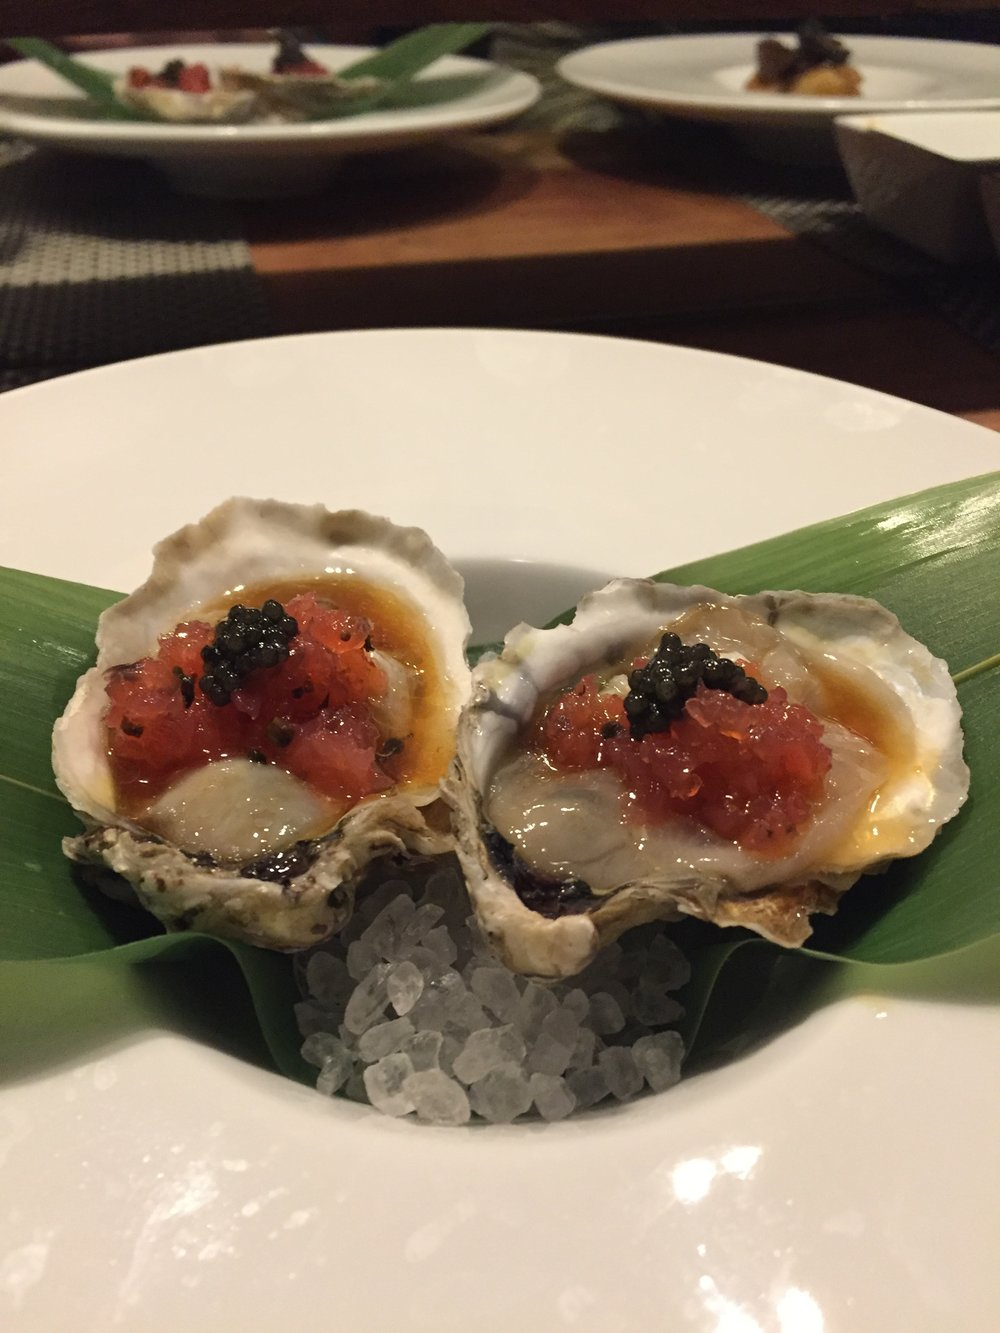 The half shell oysters.